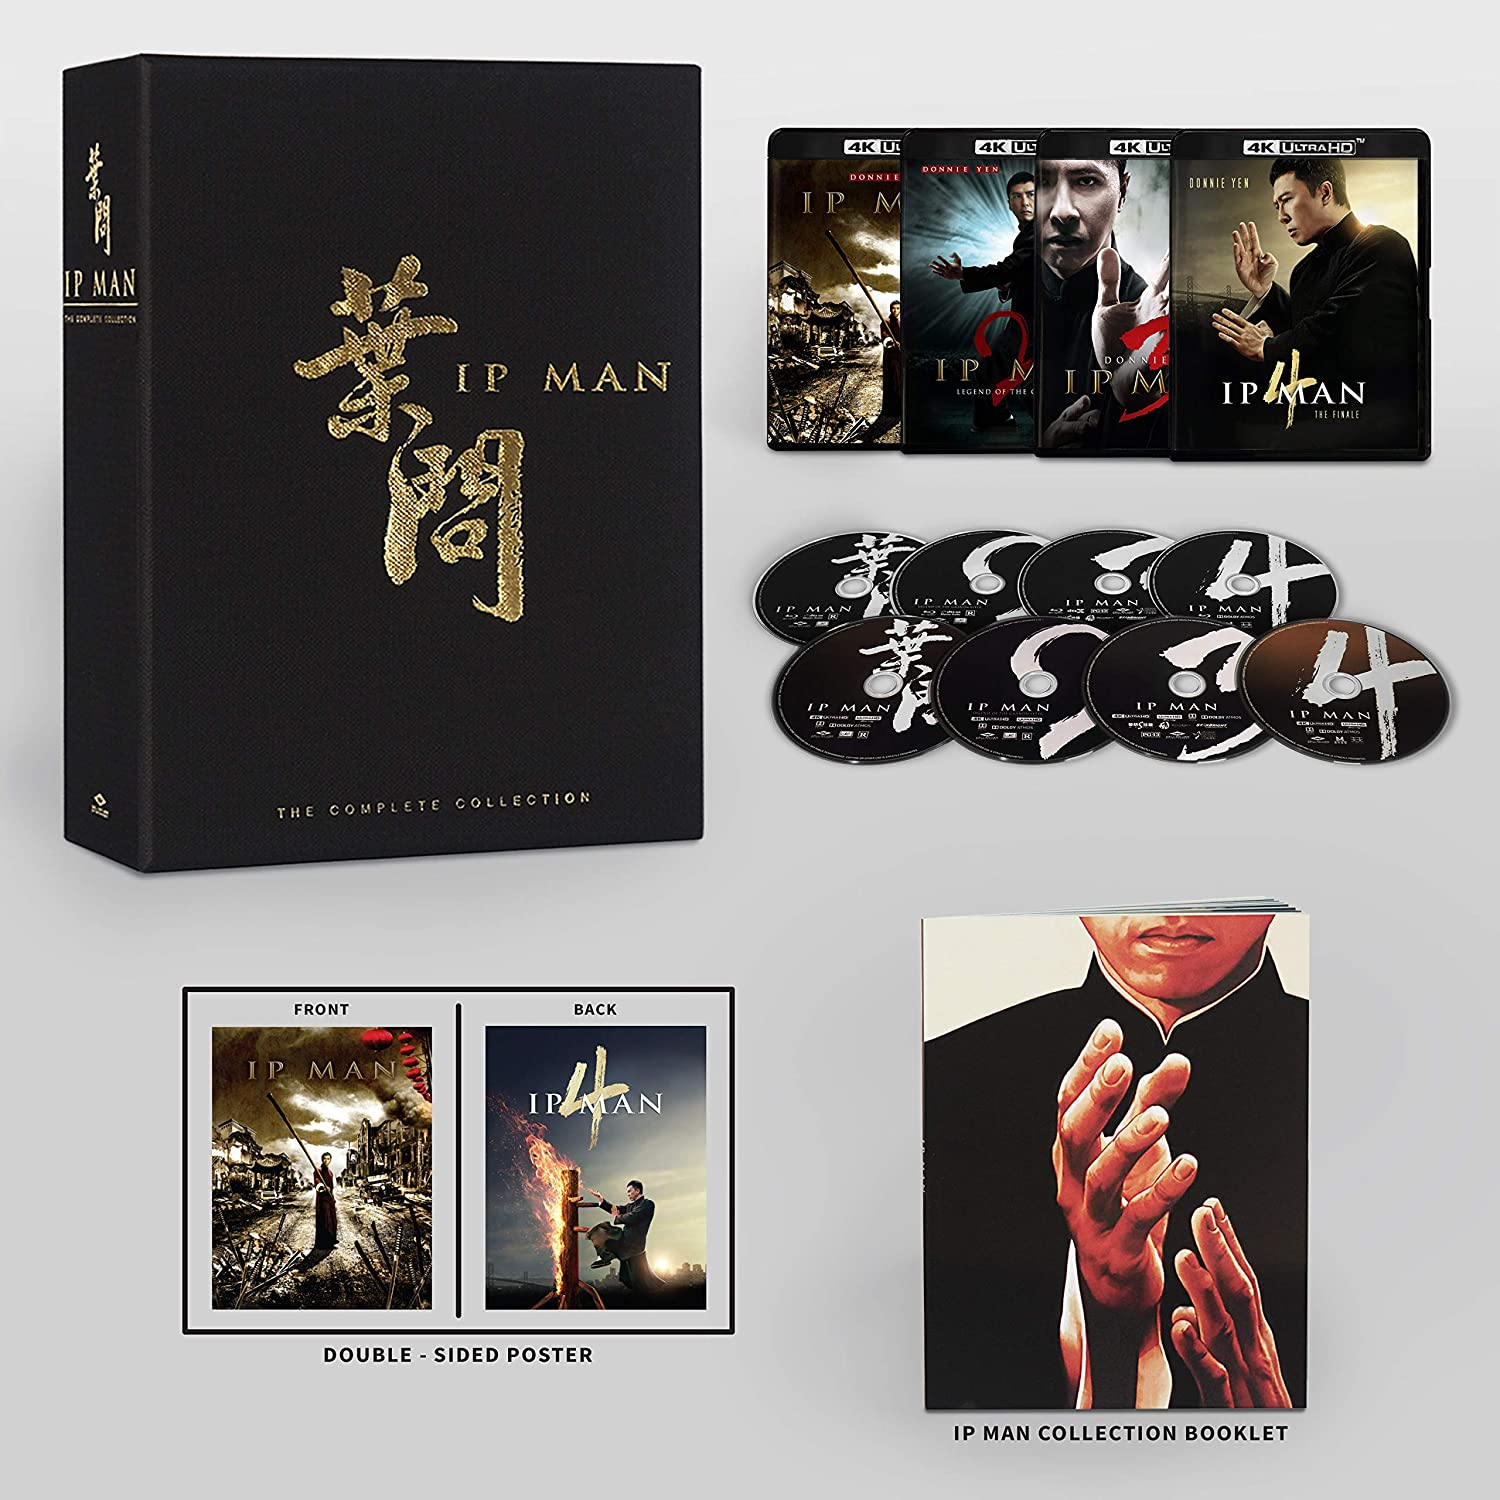 Ip Man The Complete Collection 4k Blu-ray open